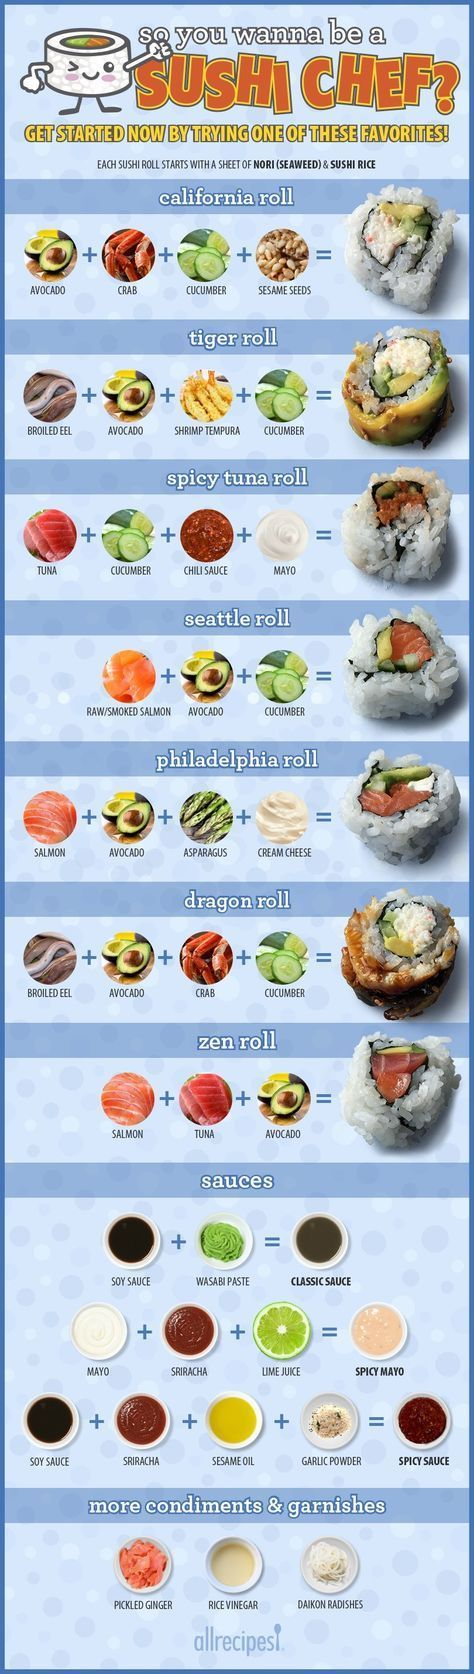 How to Make Your Own Sushi Rolls | With just a little practice, you can make sushi rolls at home that are as dazzling to look at as they are delicious to eat.